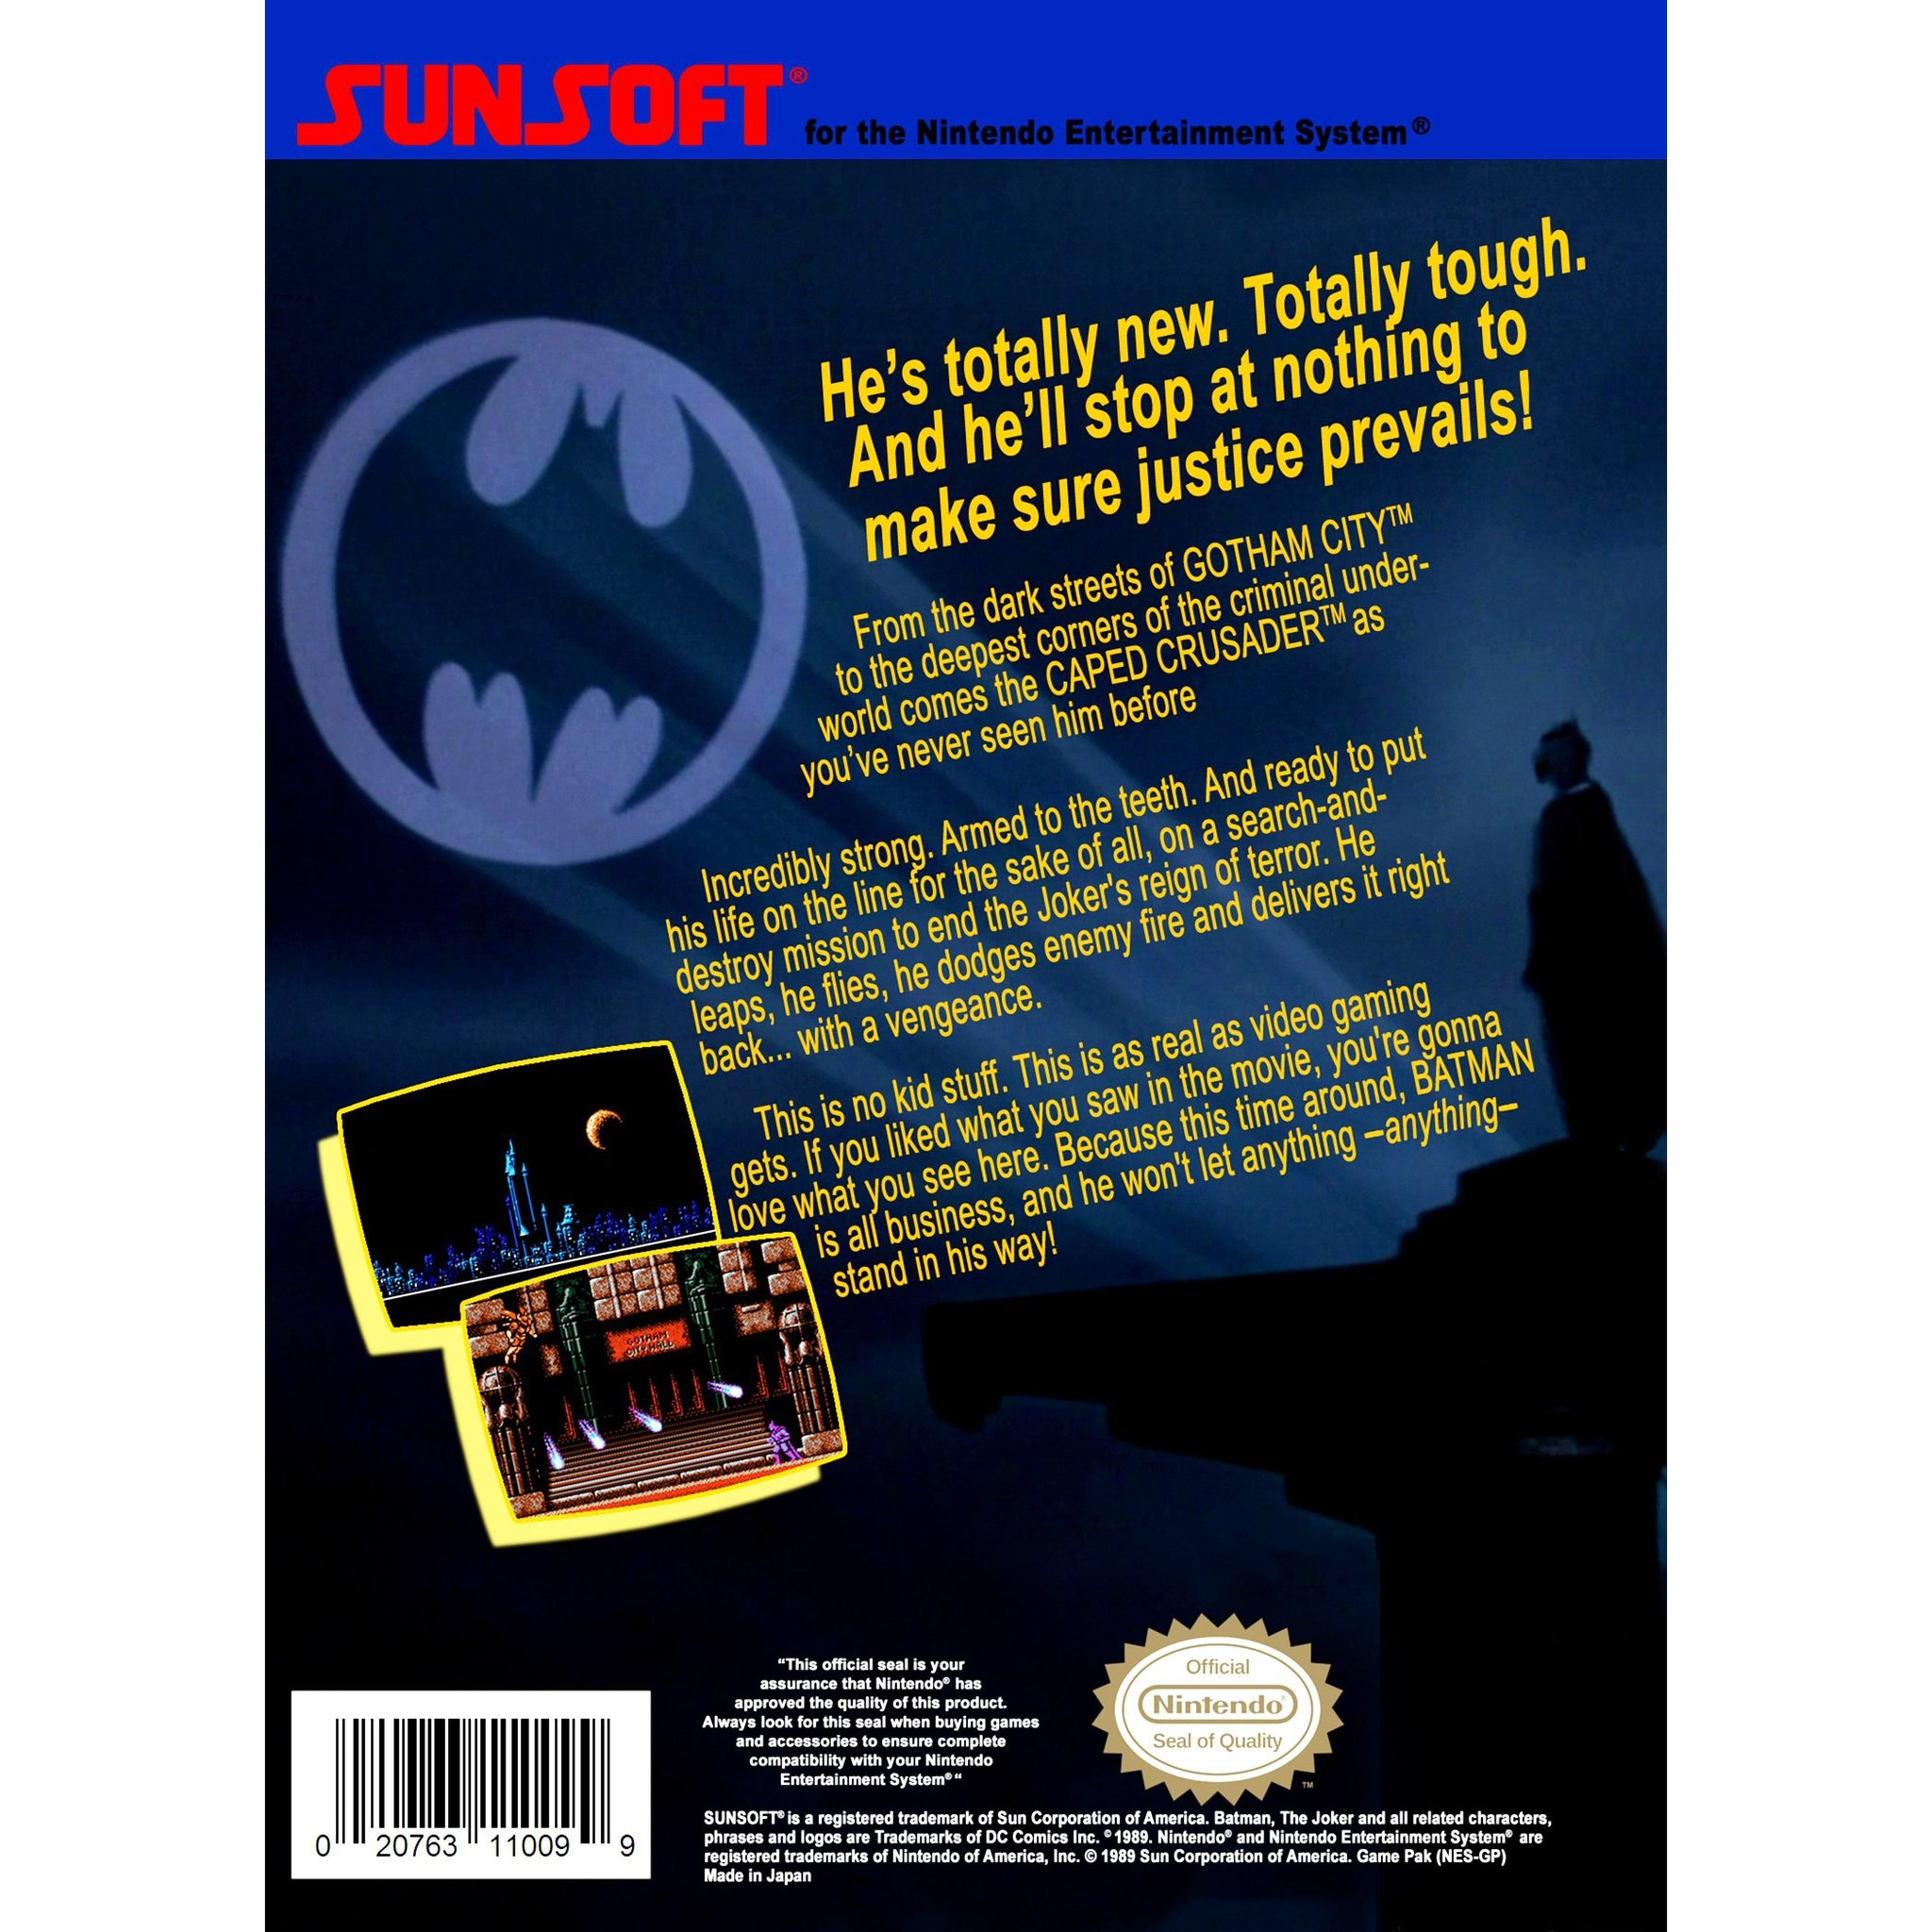 Batman: The Video Game - Authentic NES Game Cartridge - YourGamingShop.com - Buy, Sell, Trade Video Games Online. 120 Day Warranty. Satisfaction Guaranteed.